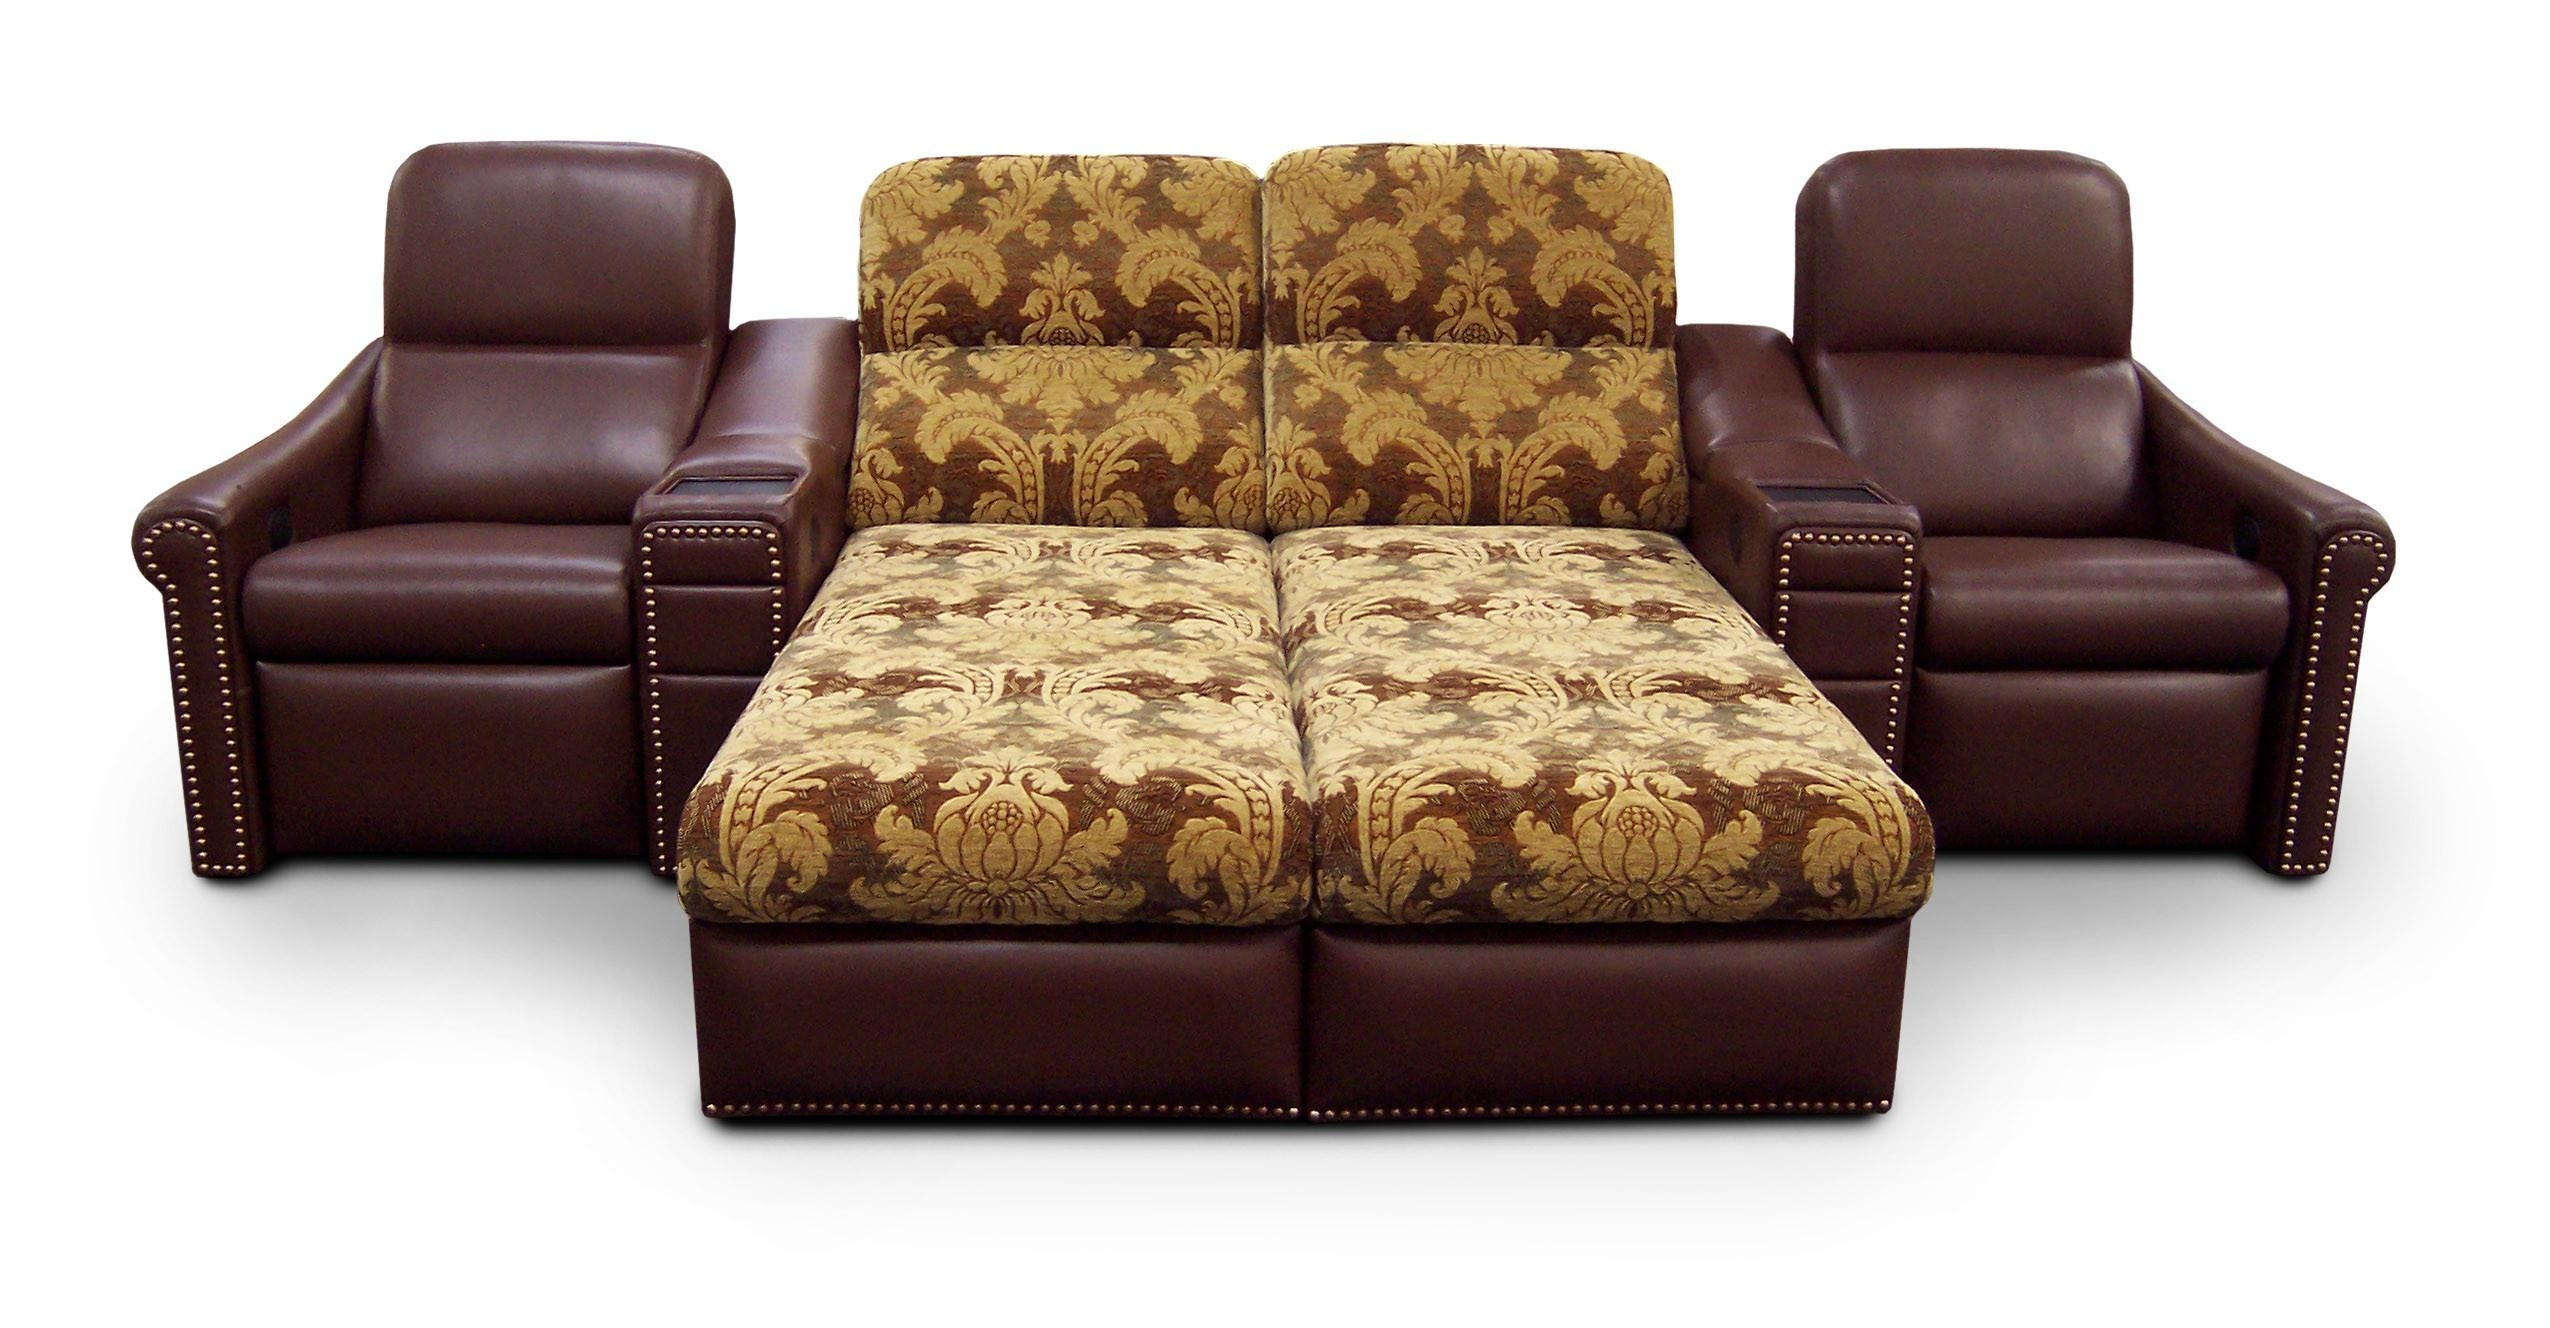 Sofas Center : Double Chaise Lounge Sofa Chair Sectional Indoor Intended For Chaise Sofa Chairs (View 8 of 20)